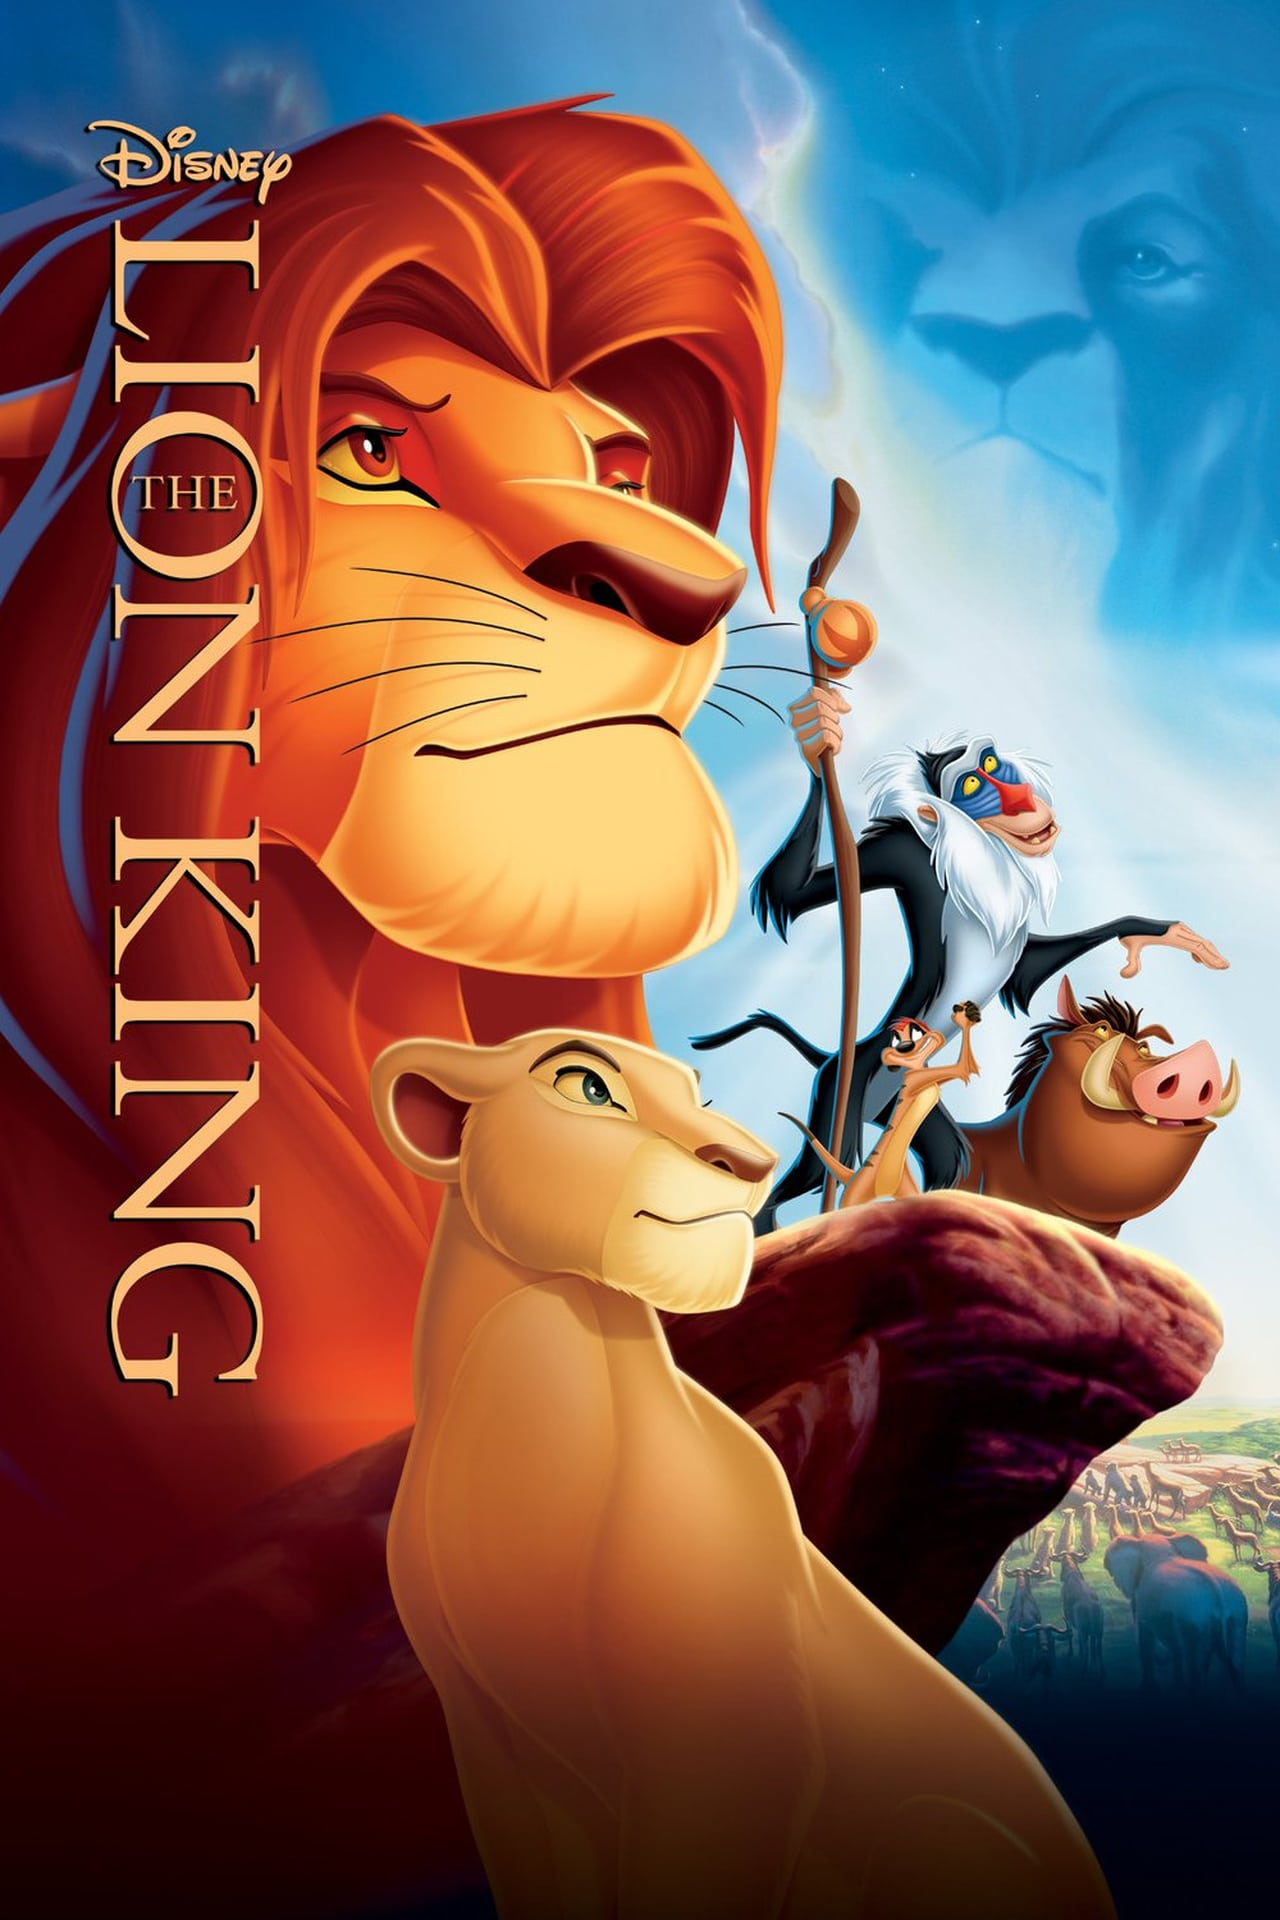 The Lion King (1994) By Disney